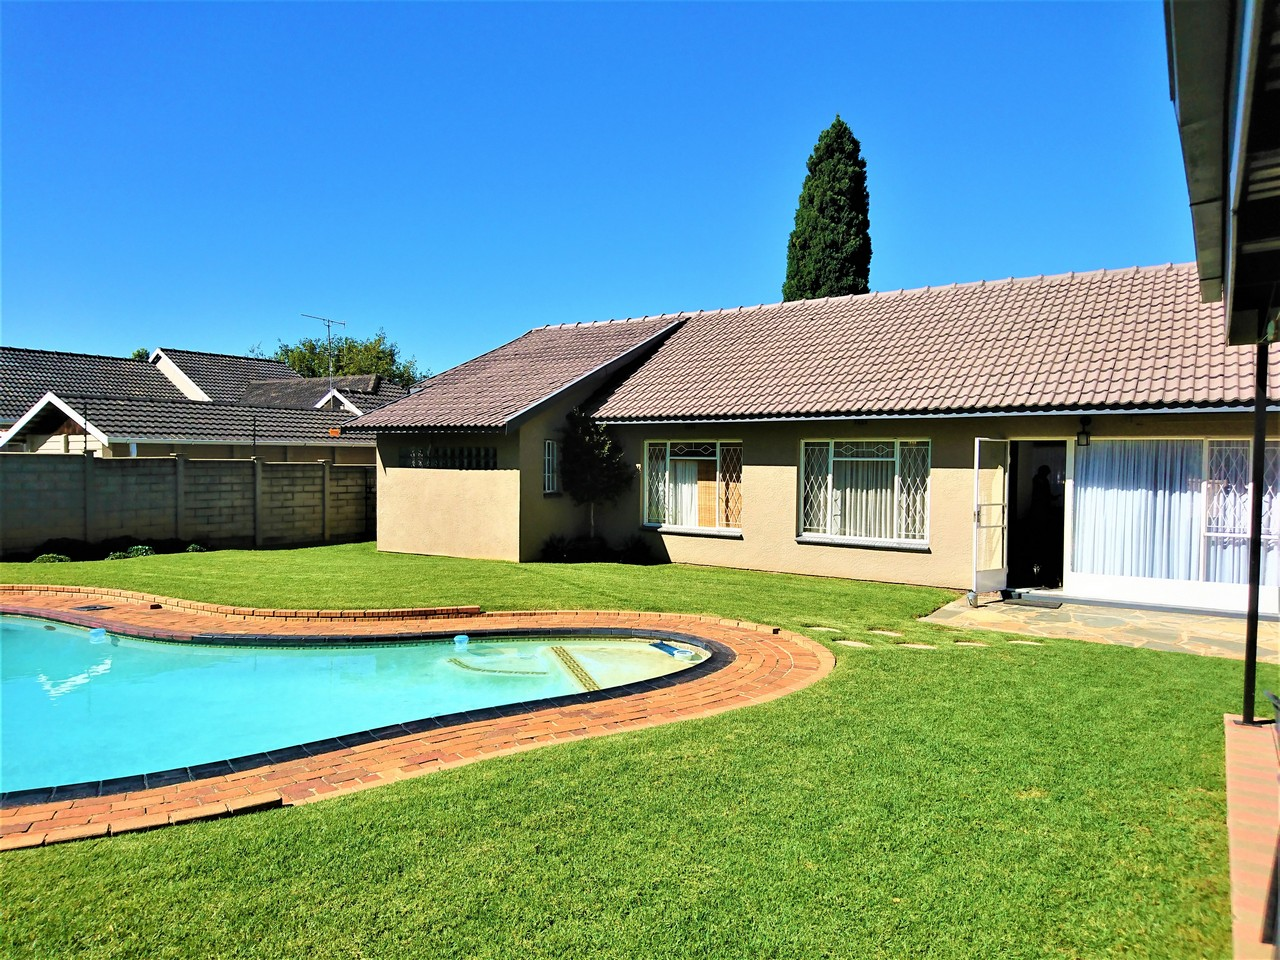 3 Bedroom House for sale in Brackendowns ENT0031078 : photo#0